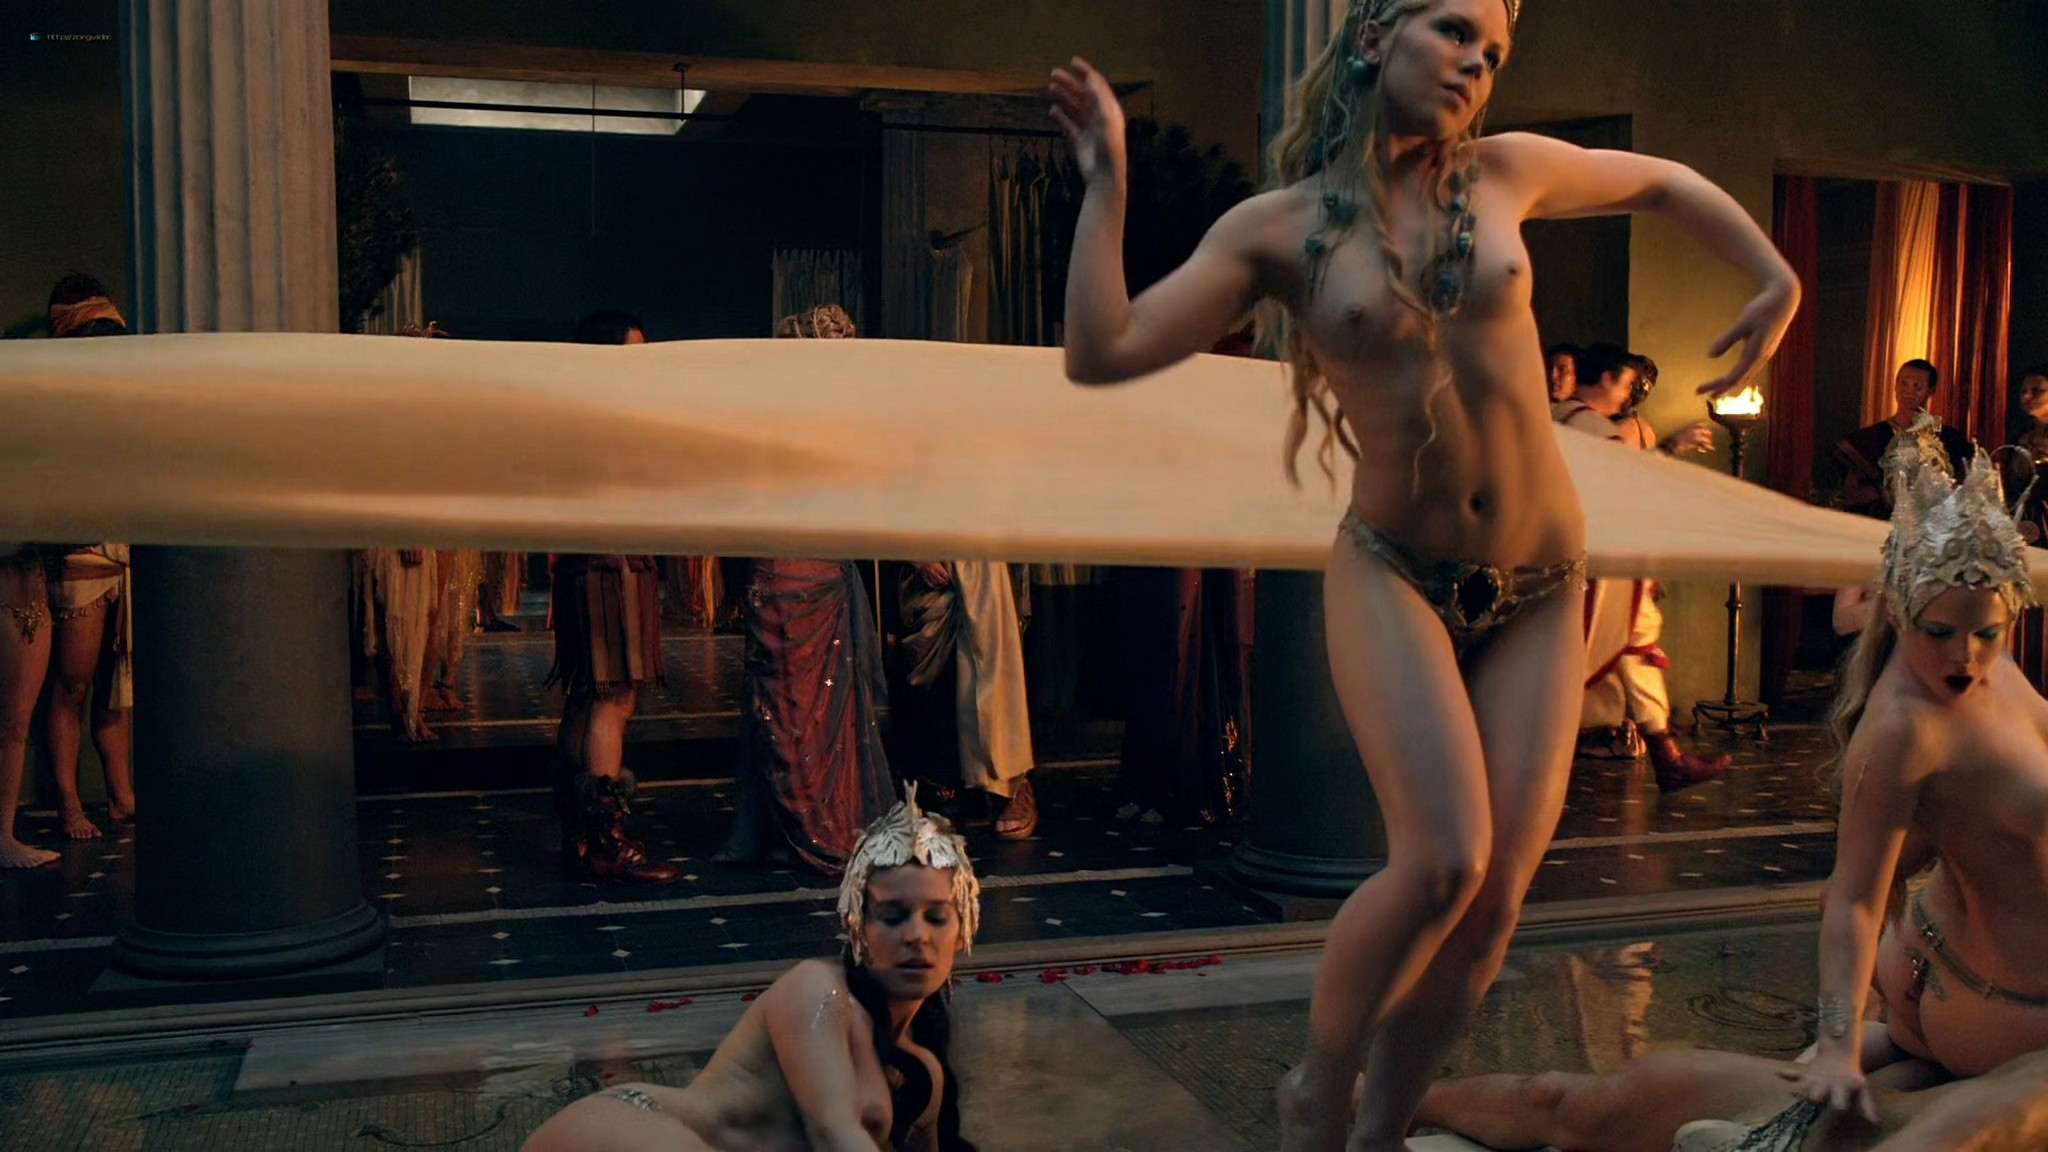 Viva Bianca nude Lucy Lawless nude sex others nude - Spartacus - Vengeance (2012) e4 1080p BluRay (9)